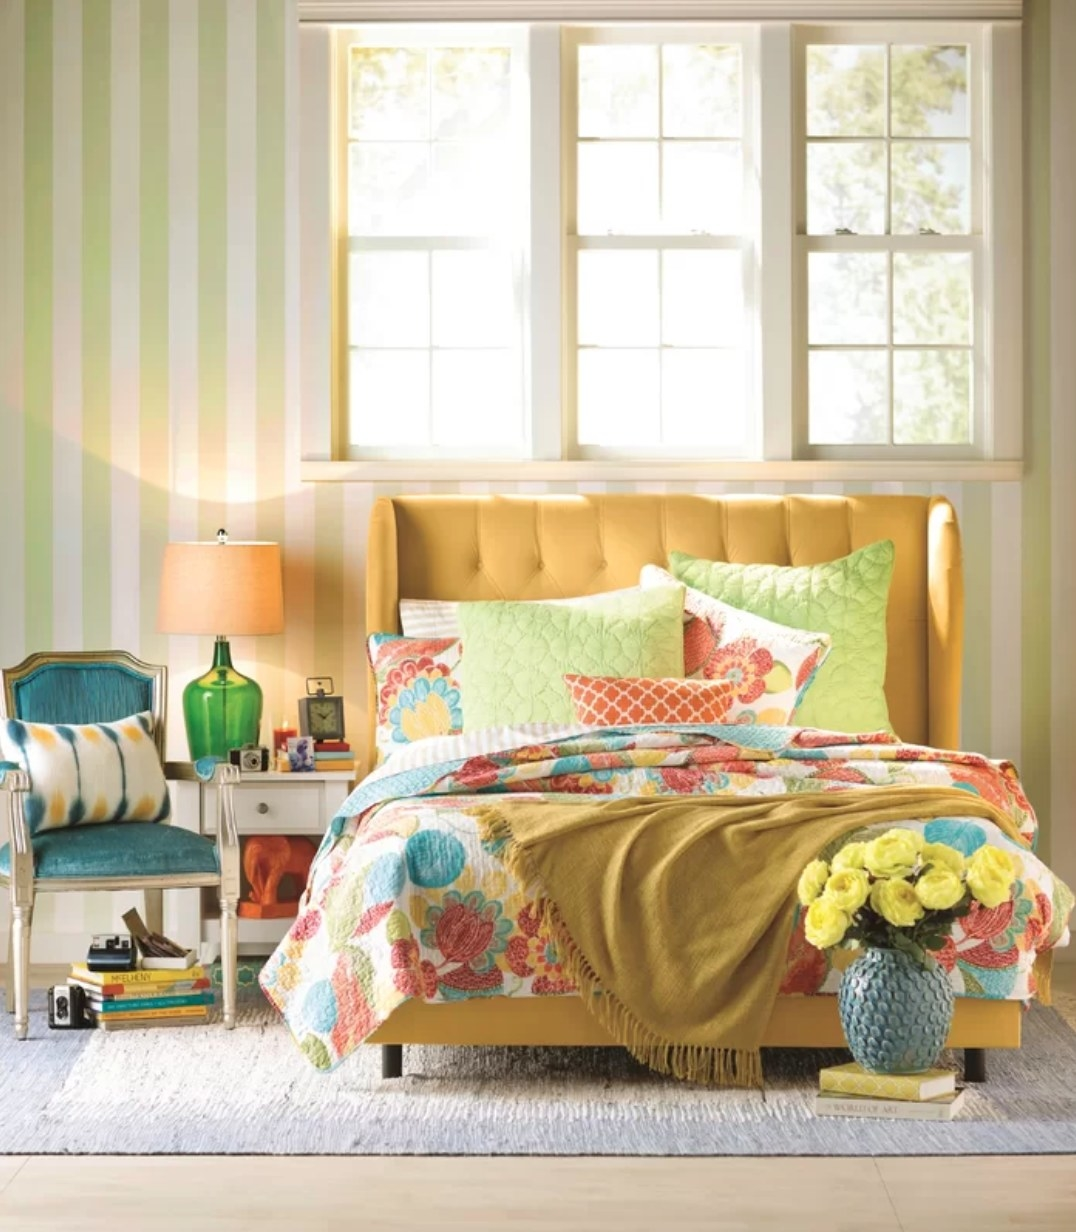 The blanket in yellow draped across a bed